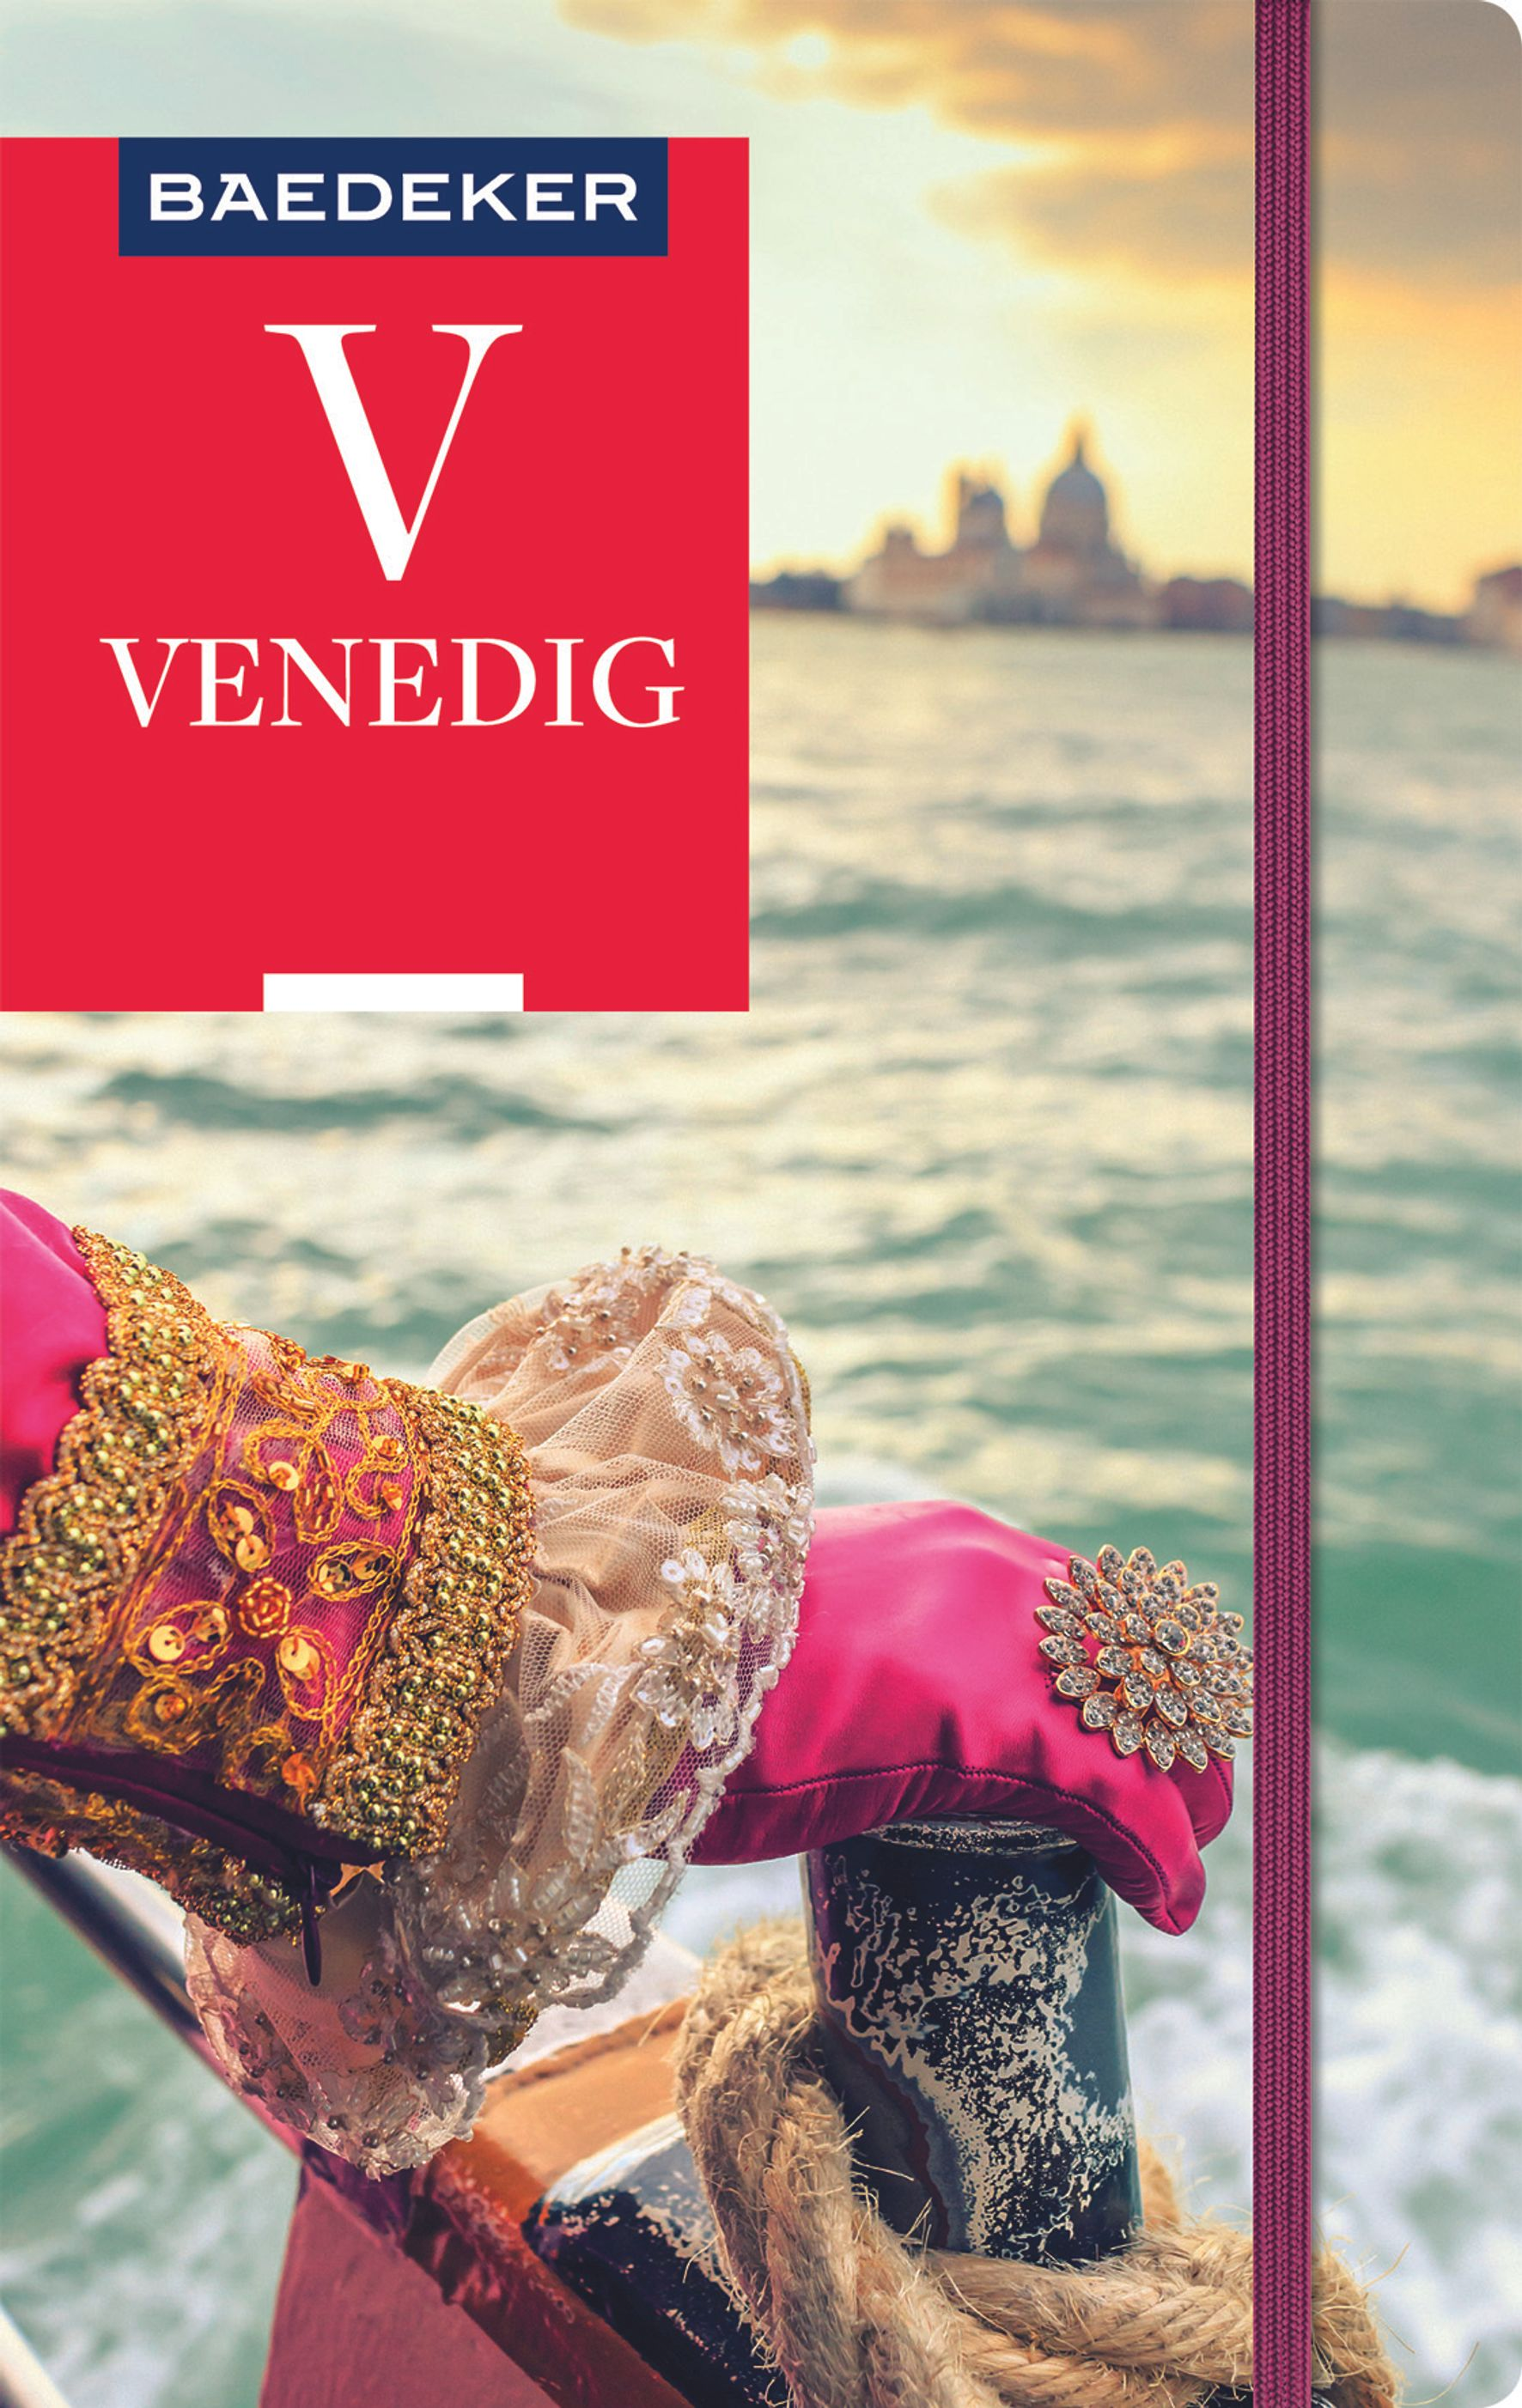 Baedeker Venedig (eBook)